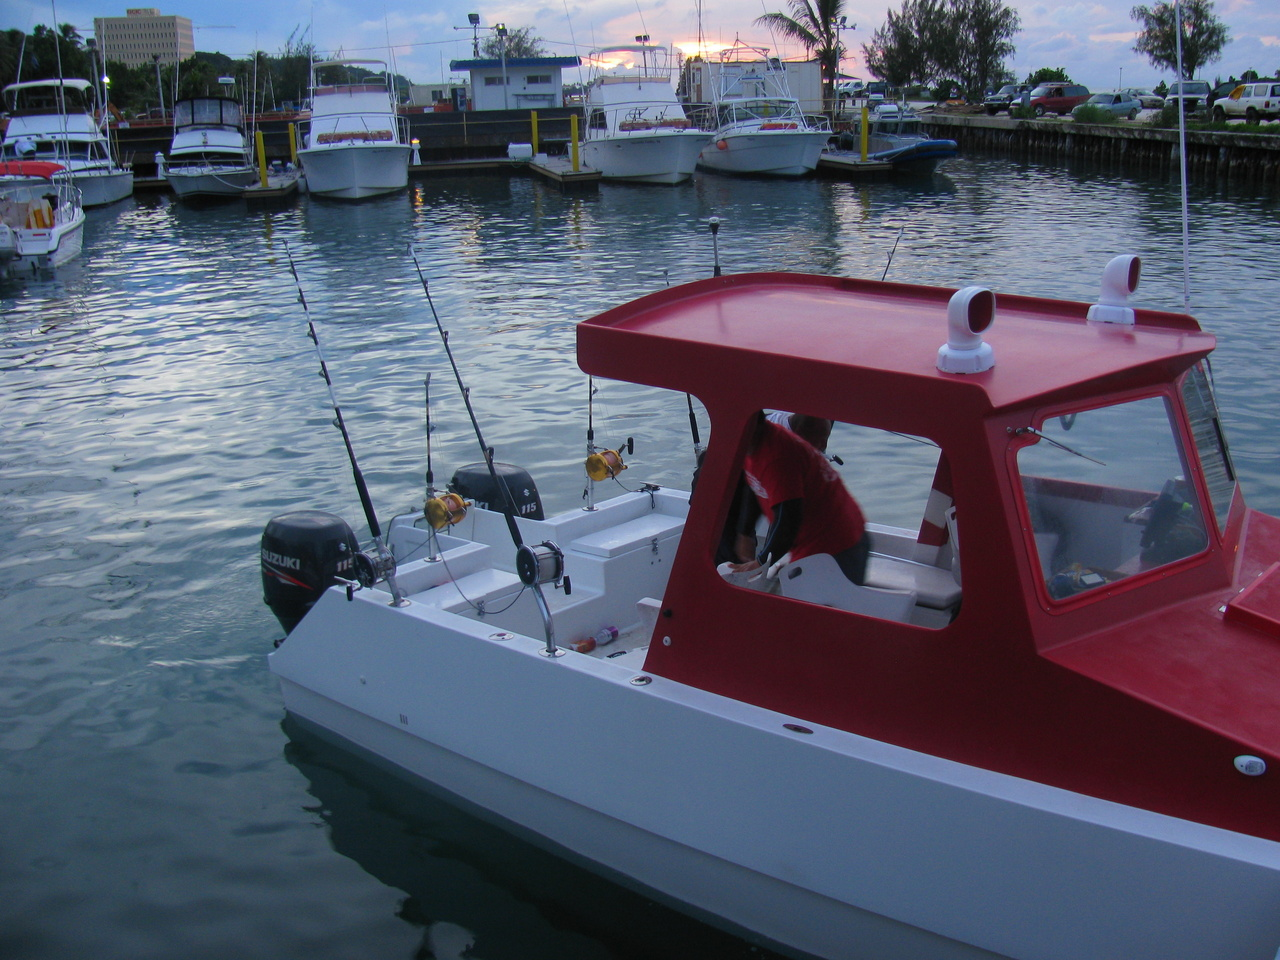 Fishing boat in the Agana Boat Basin, Guam. Photo: NOAA Fisheries/Justin Hospital.